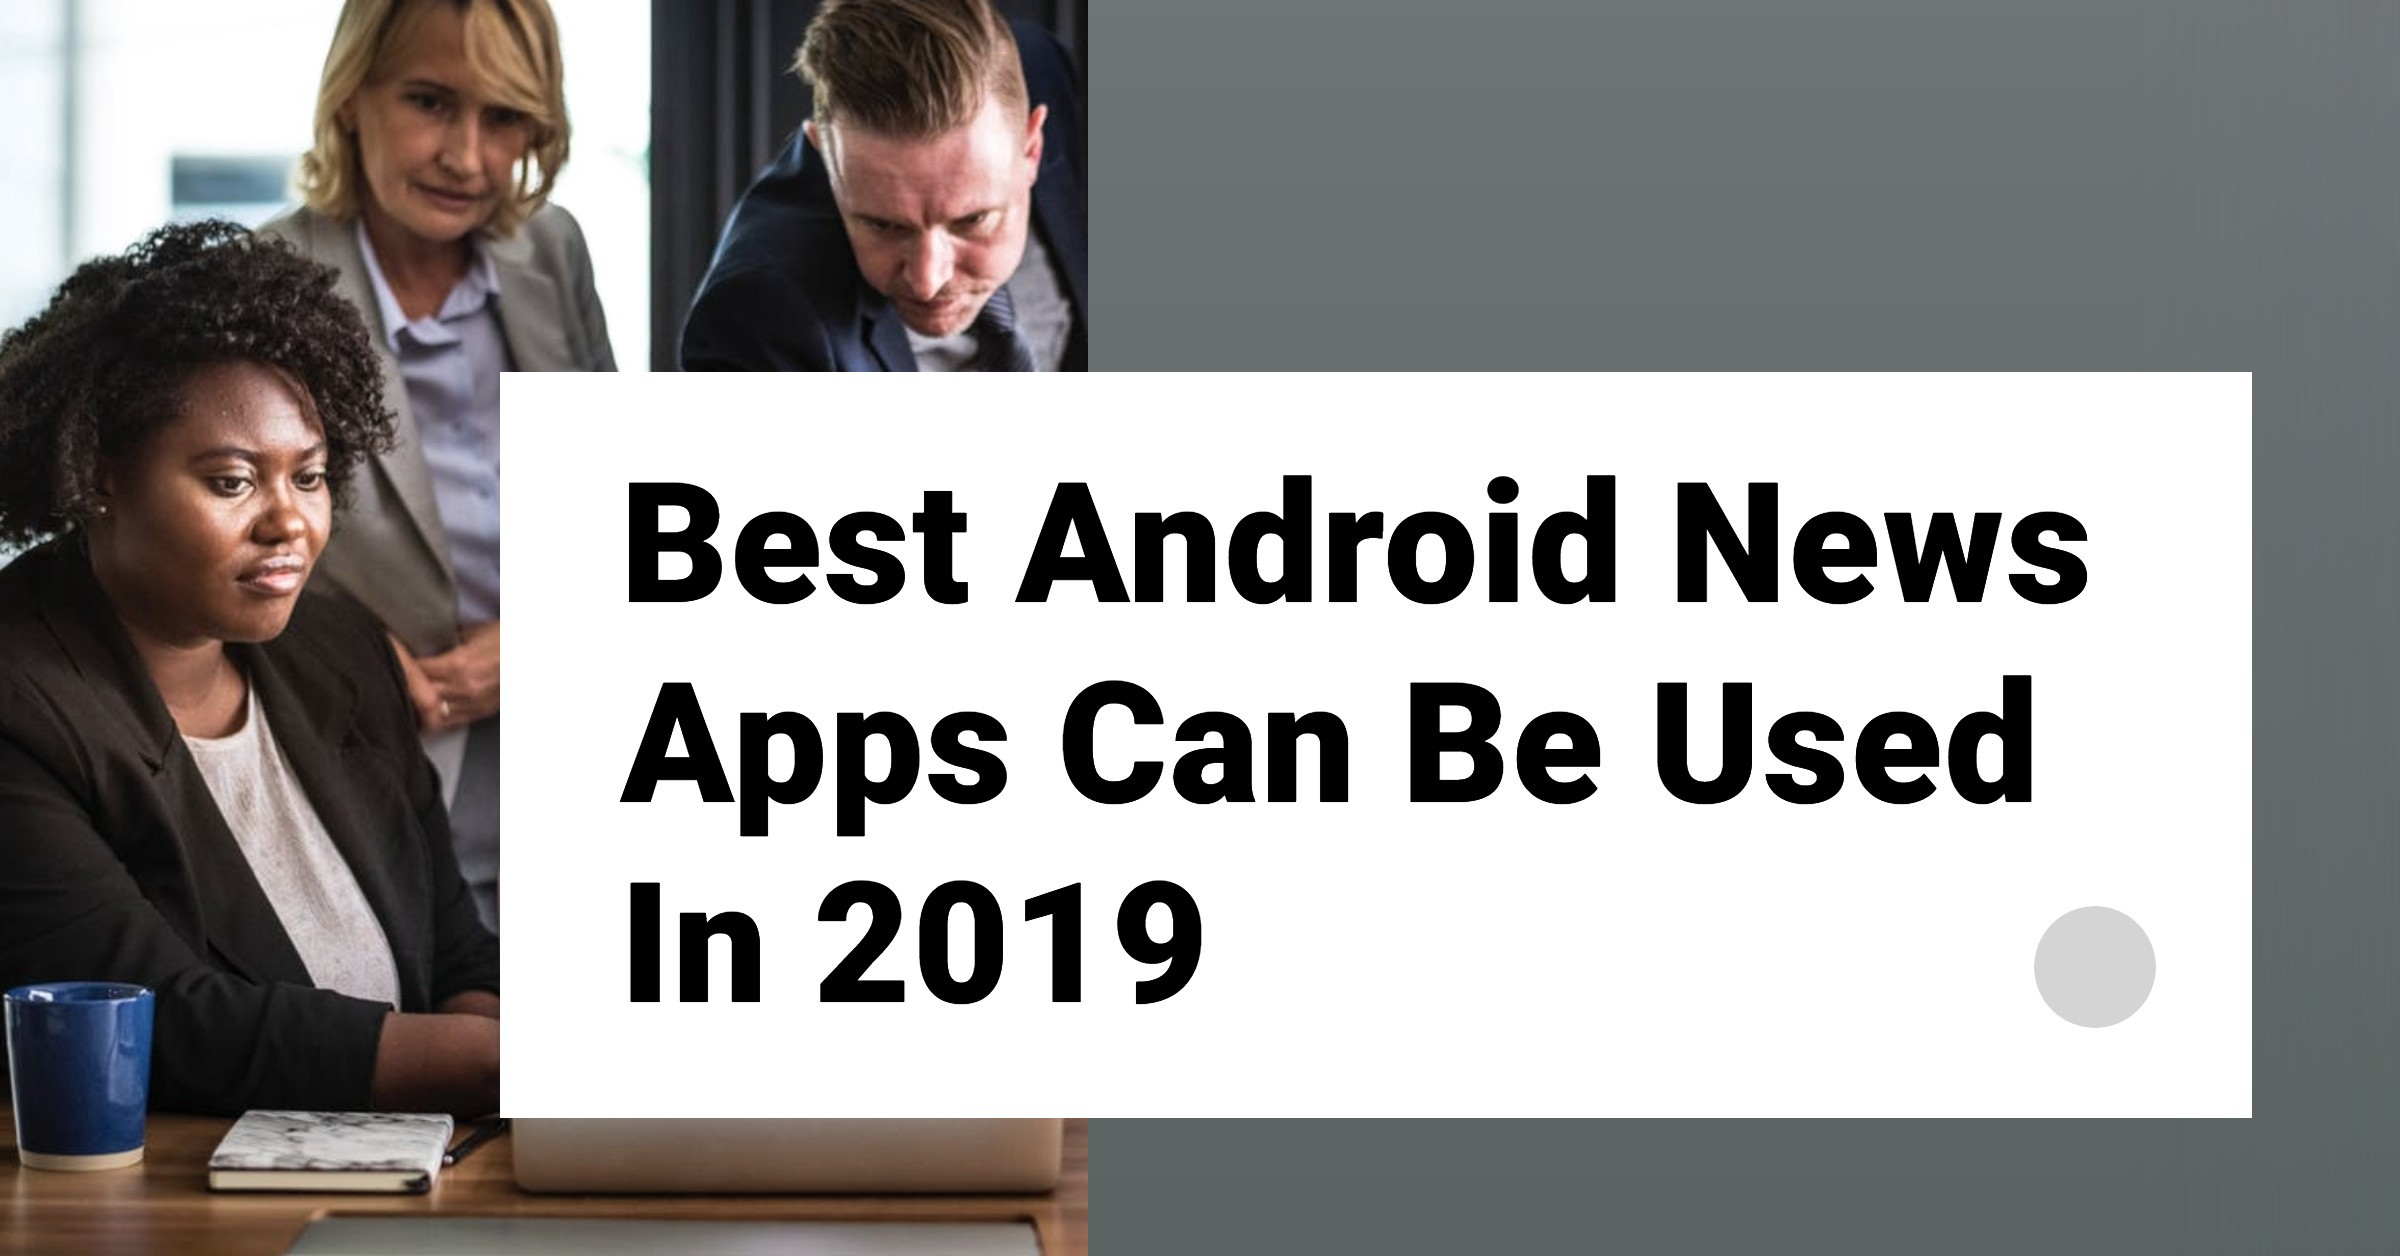 12 Best Android News Apps Can Be Used In 2019 - David Moor